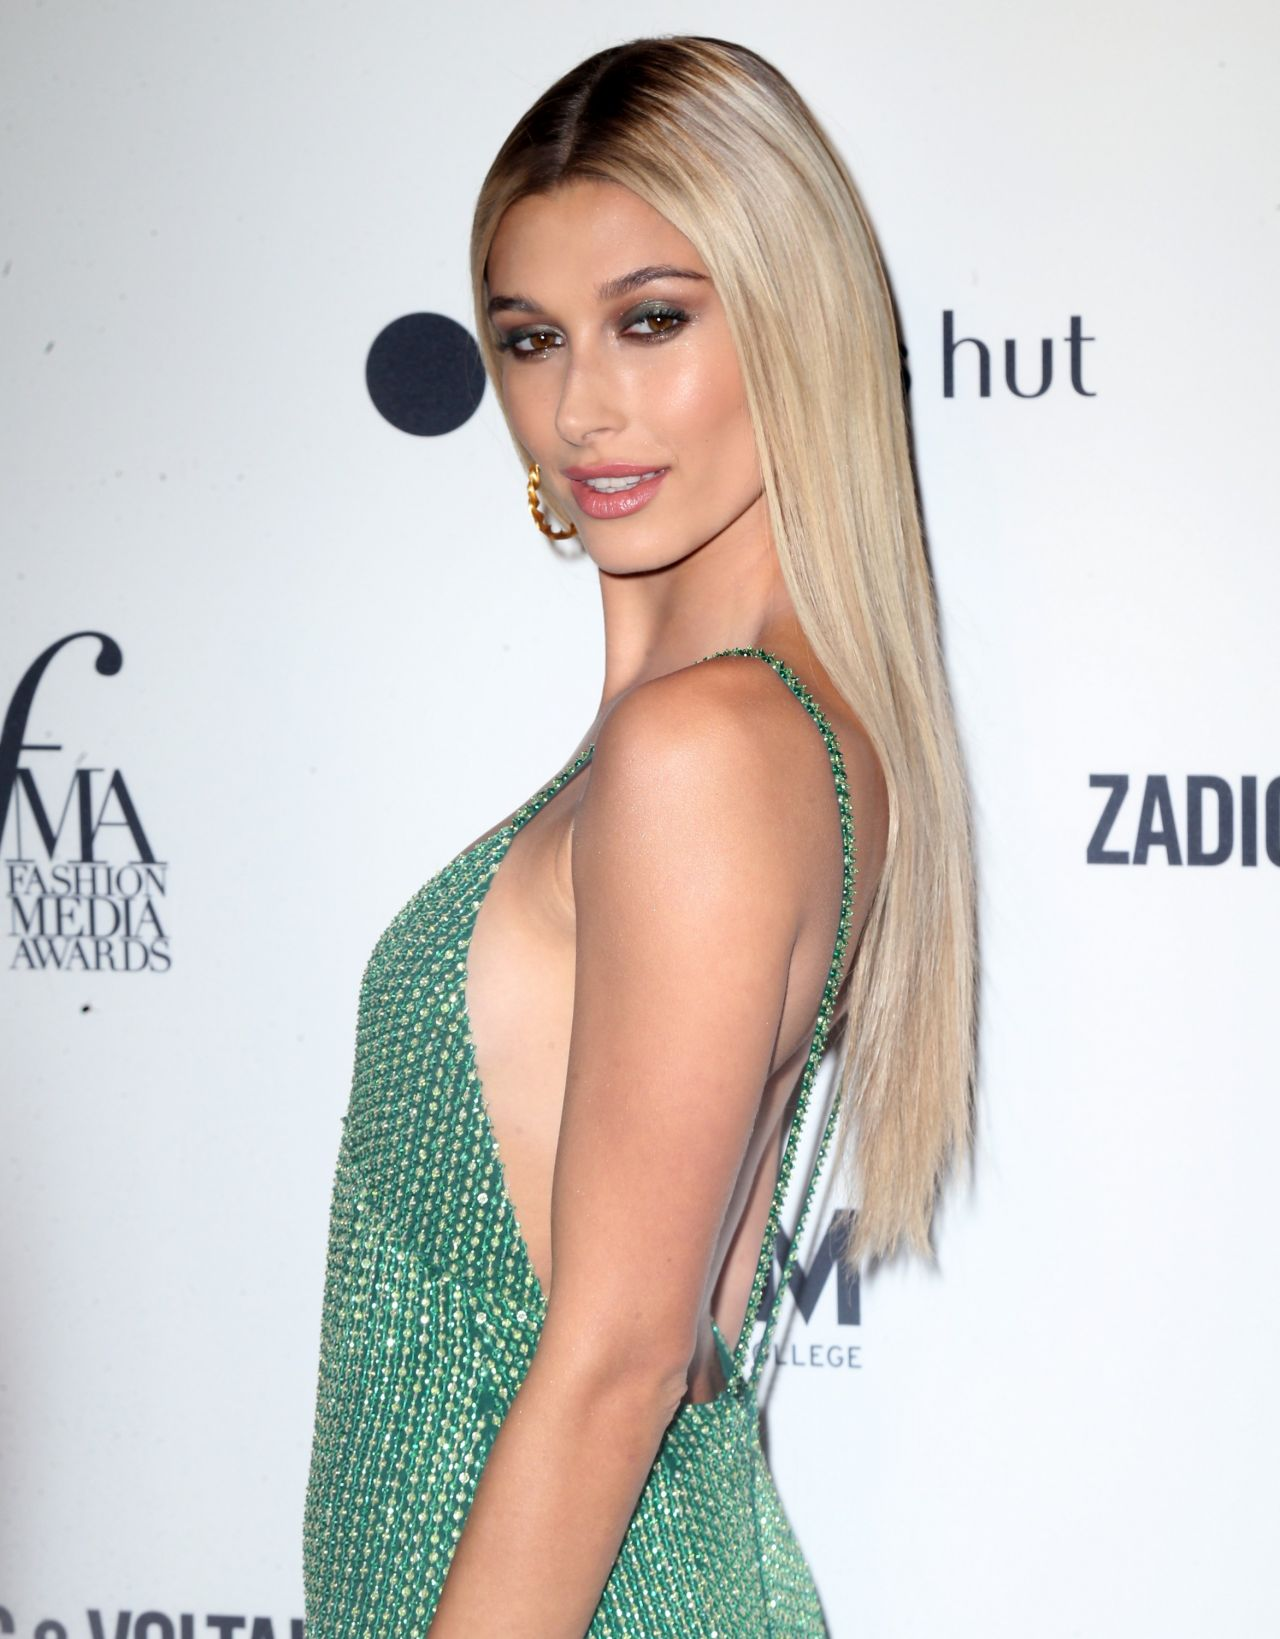 Hailey Baldwin   Daily Front Row s Fashion Media Awards in NYC 09 06     Hailey Baldwin     Daily Front Row s Fashion Media Awards in NYC 09 06 2018